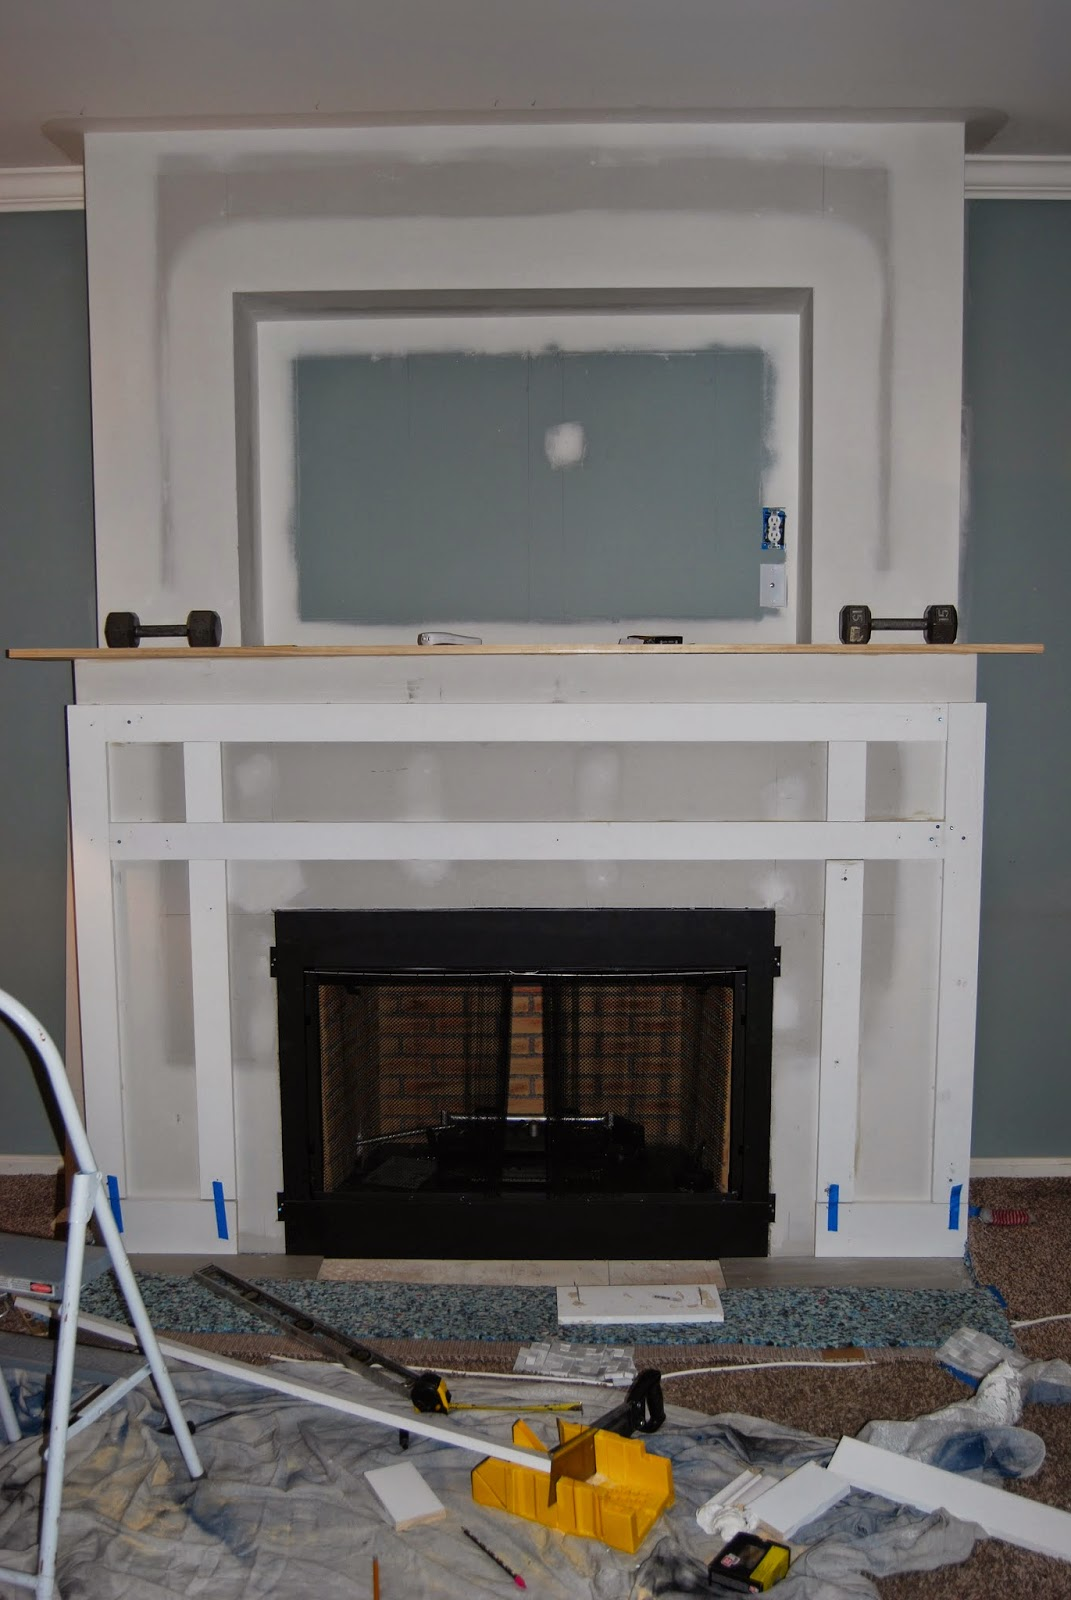 cure 4 decor fireplace surround the stockings were hung